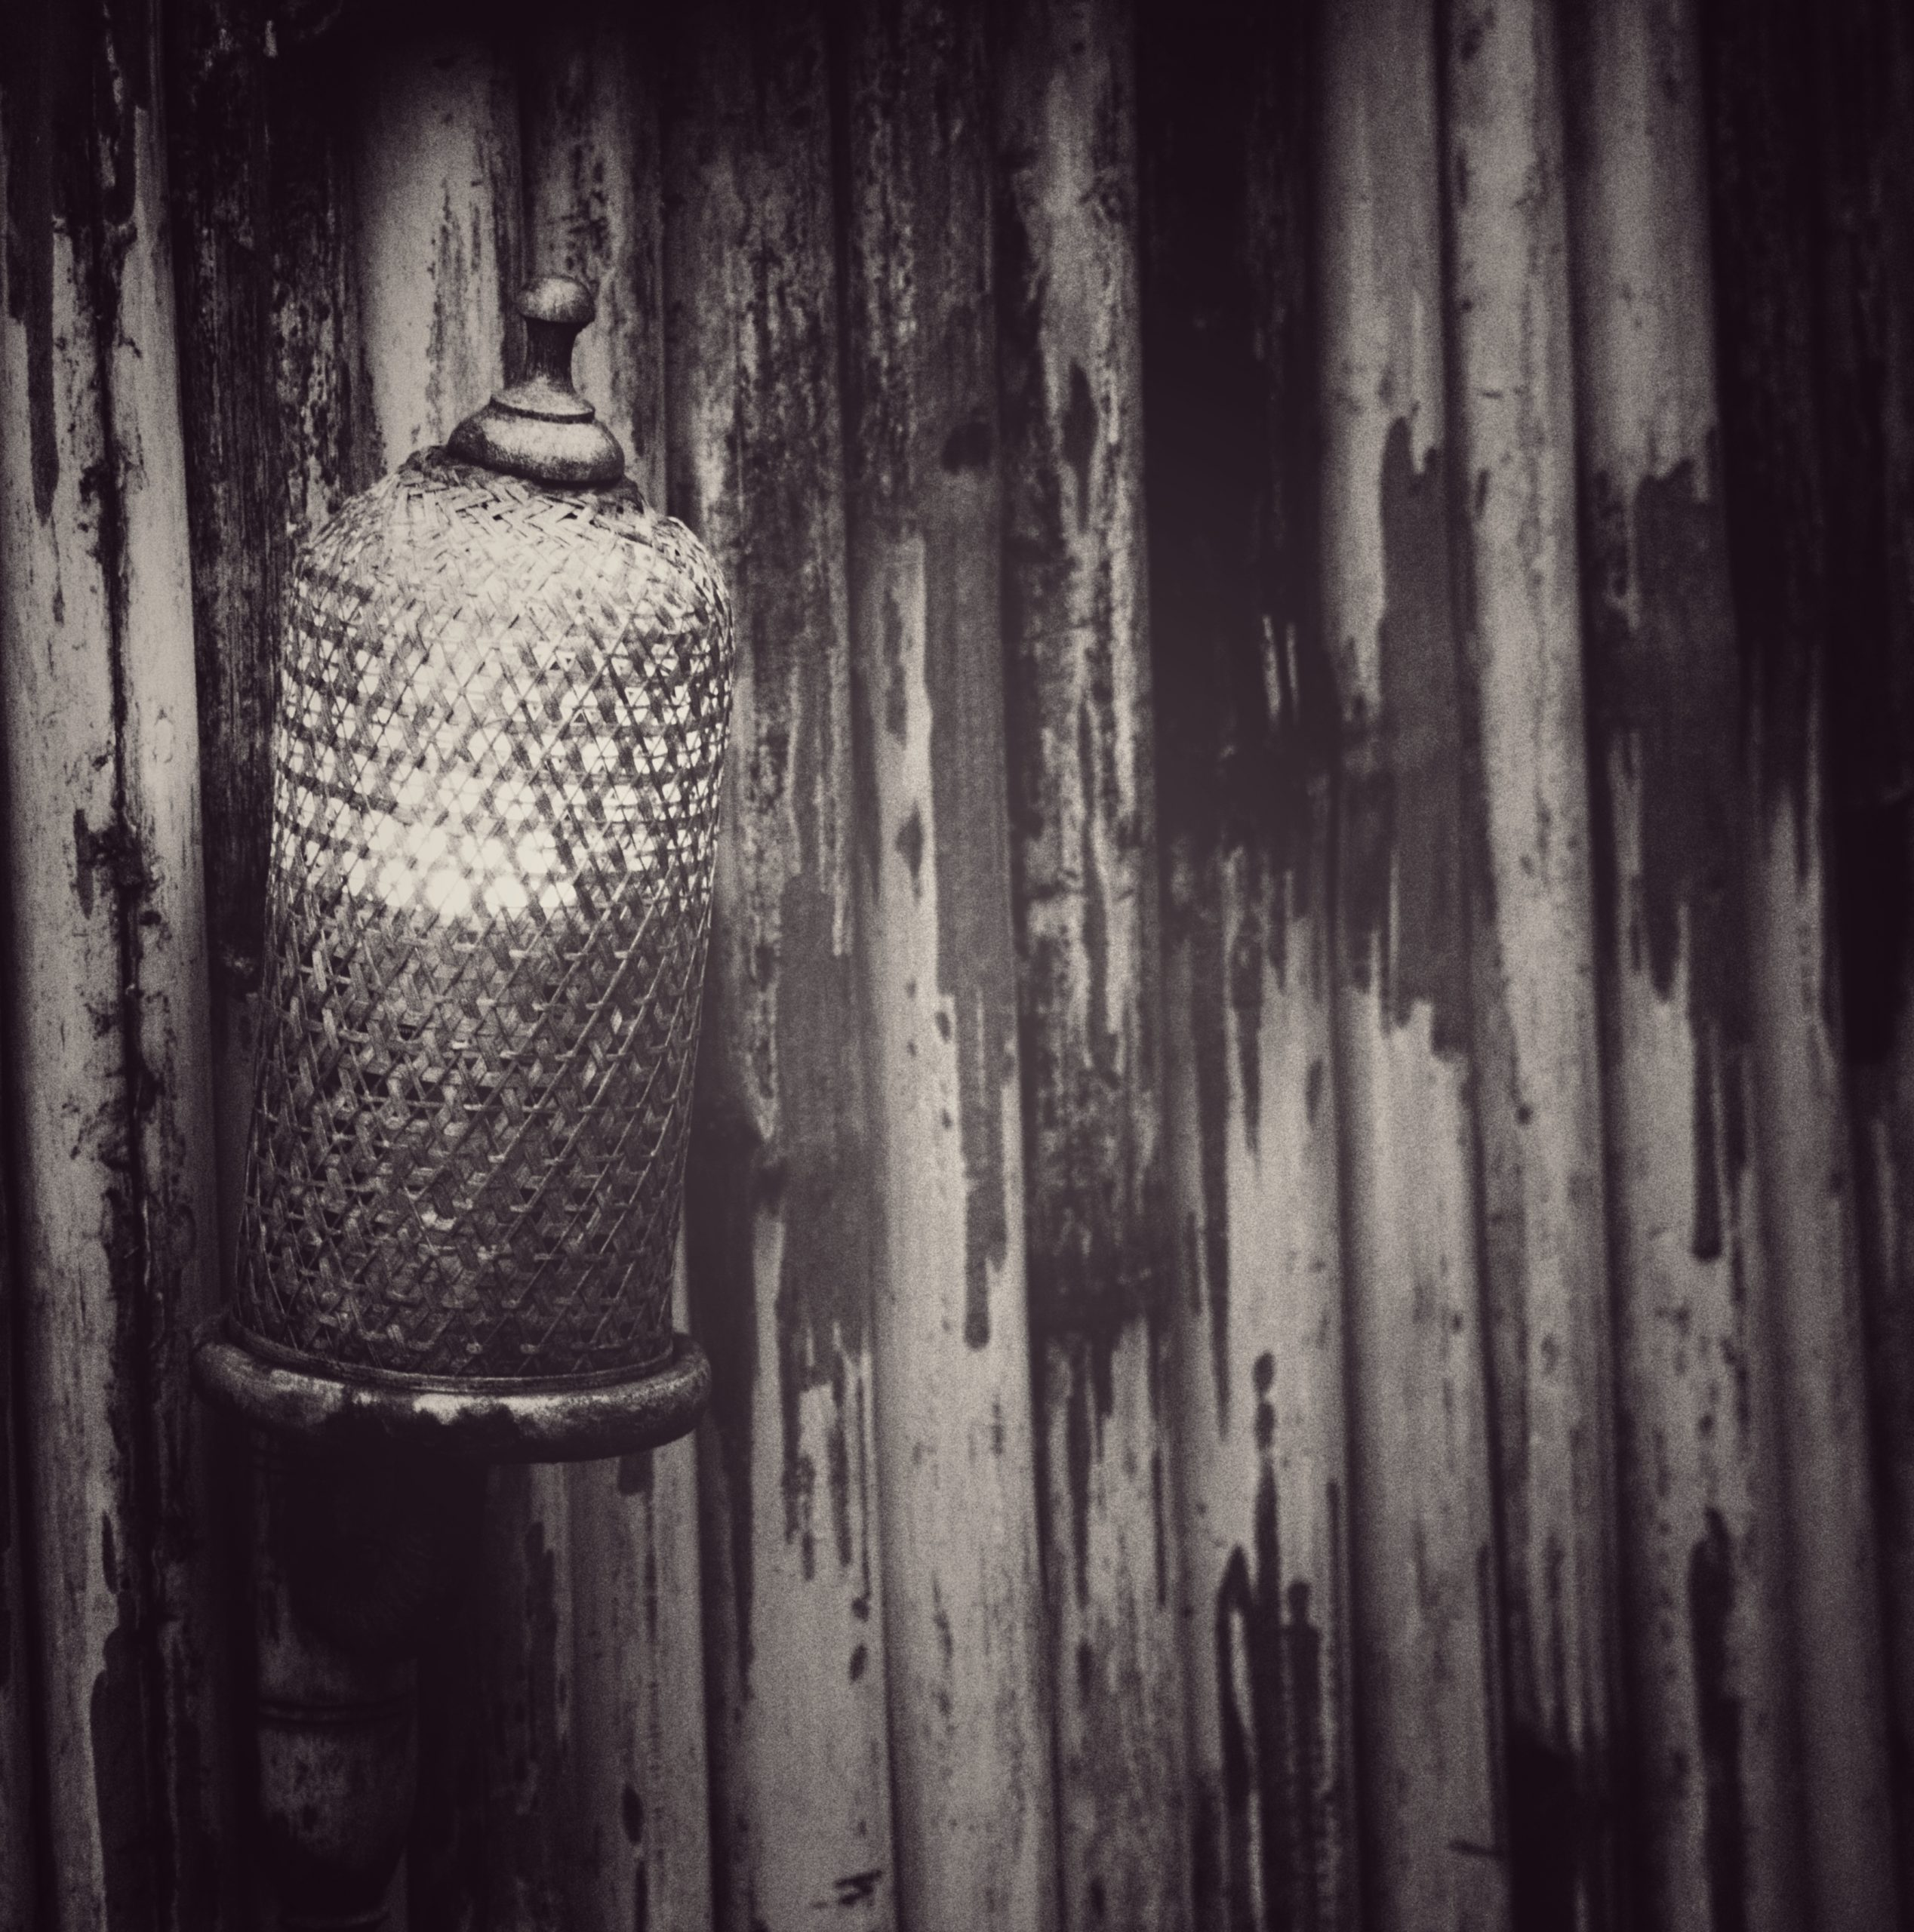 Lamp in black and white